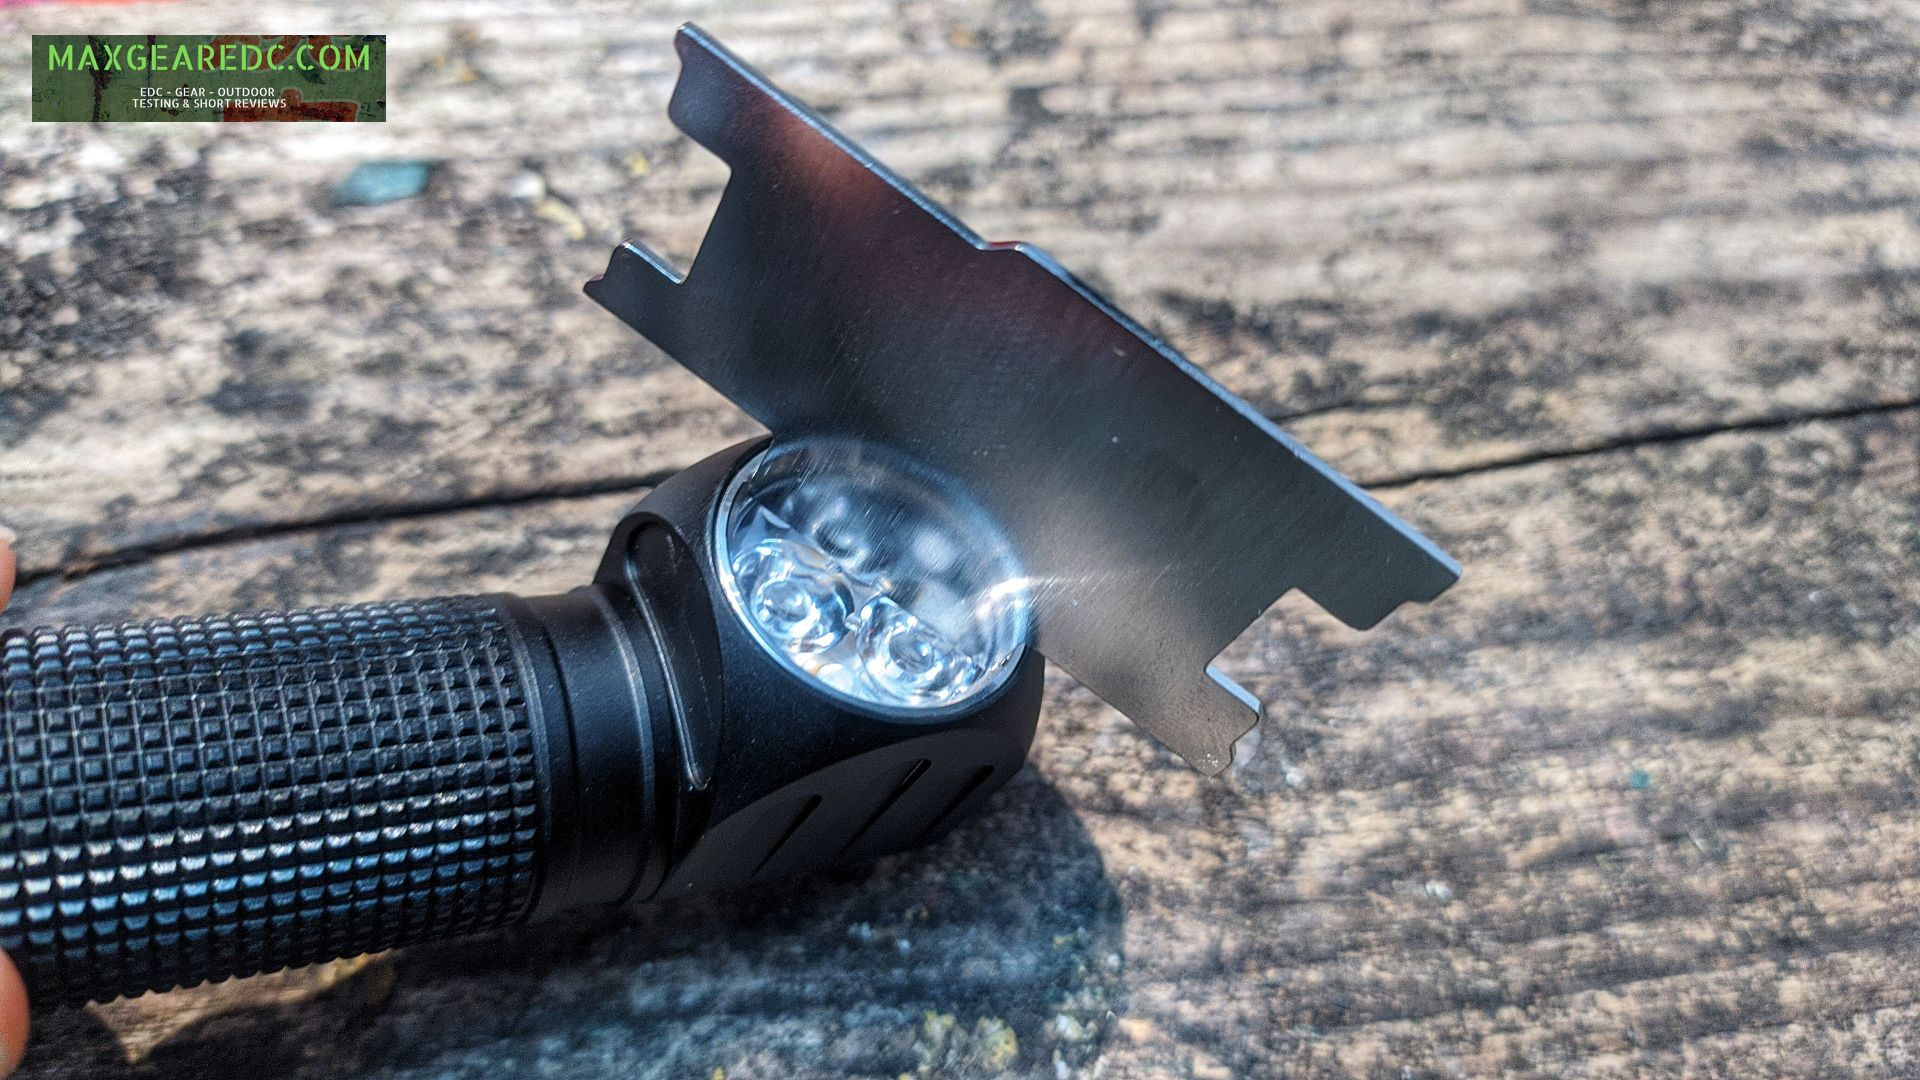 Lumintop_HL3A_Flashlight_Review_SST20_18650_maxgearedc.com_EDC_GEAR_OUTDOOR_TESTING_and_SHORT_REVIEWS_13